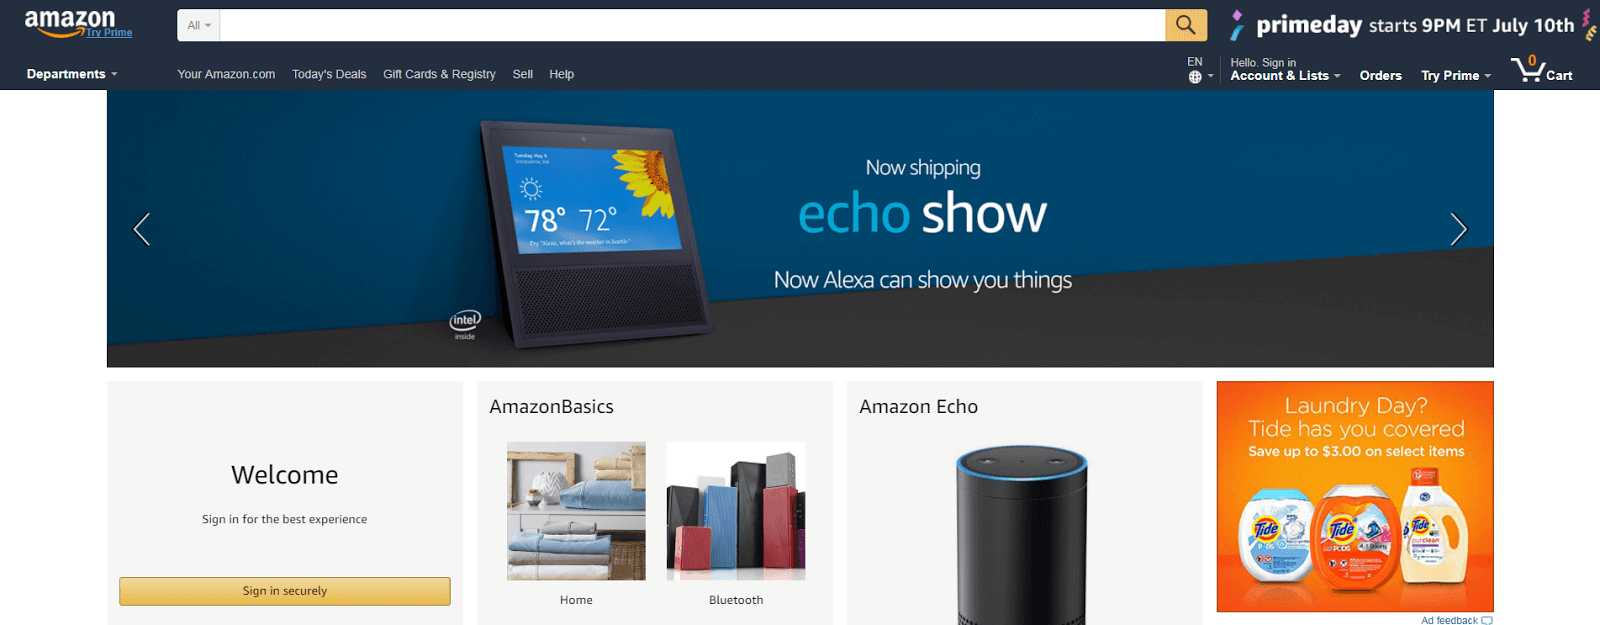 amazon-home-page.PNG